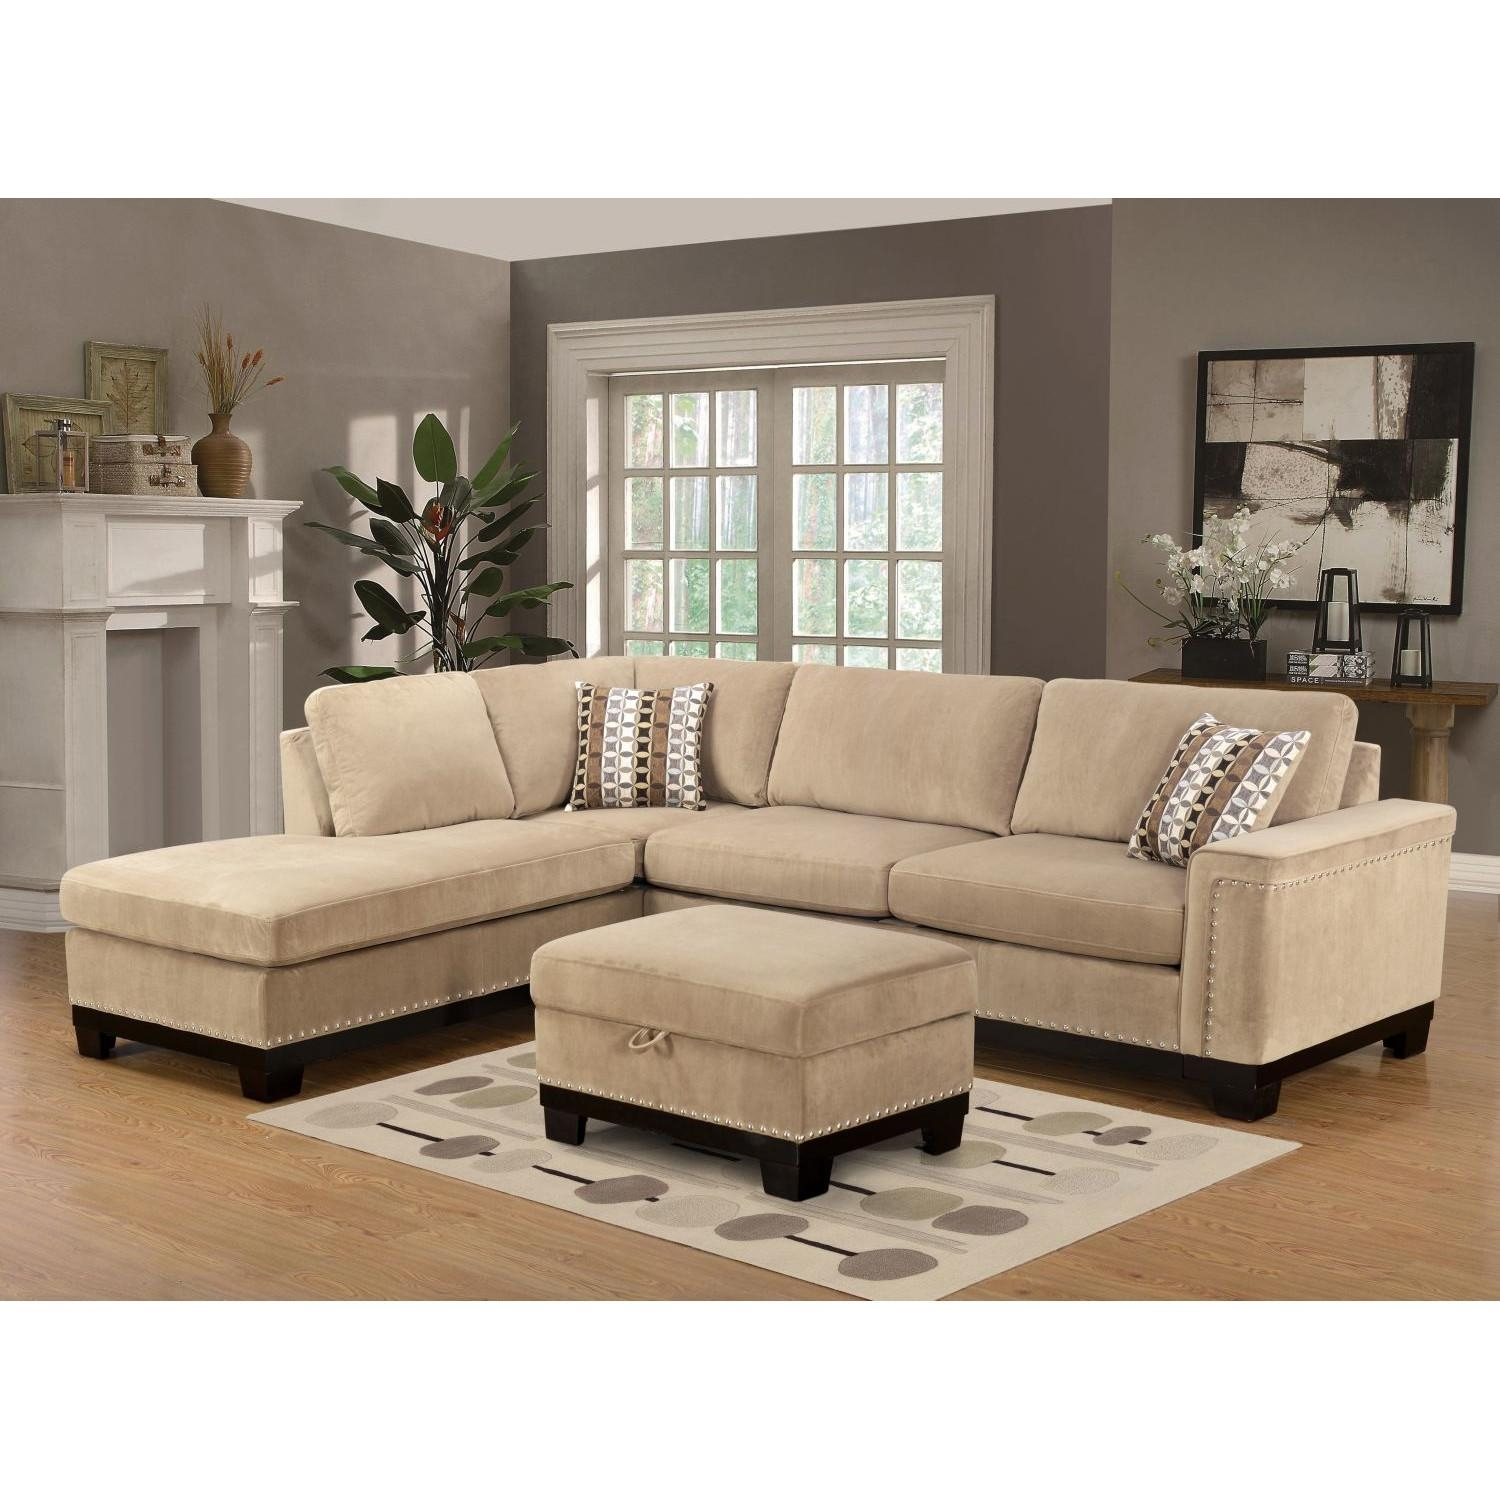 Big Comfortable Chairs 25 Top Big Comfy Sofas Sofa Ideas